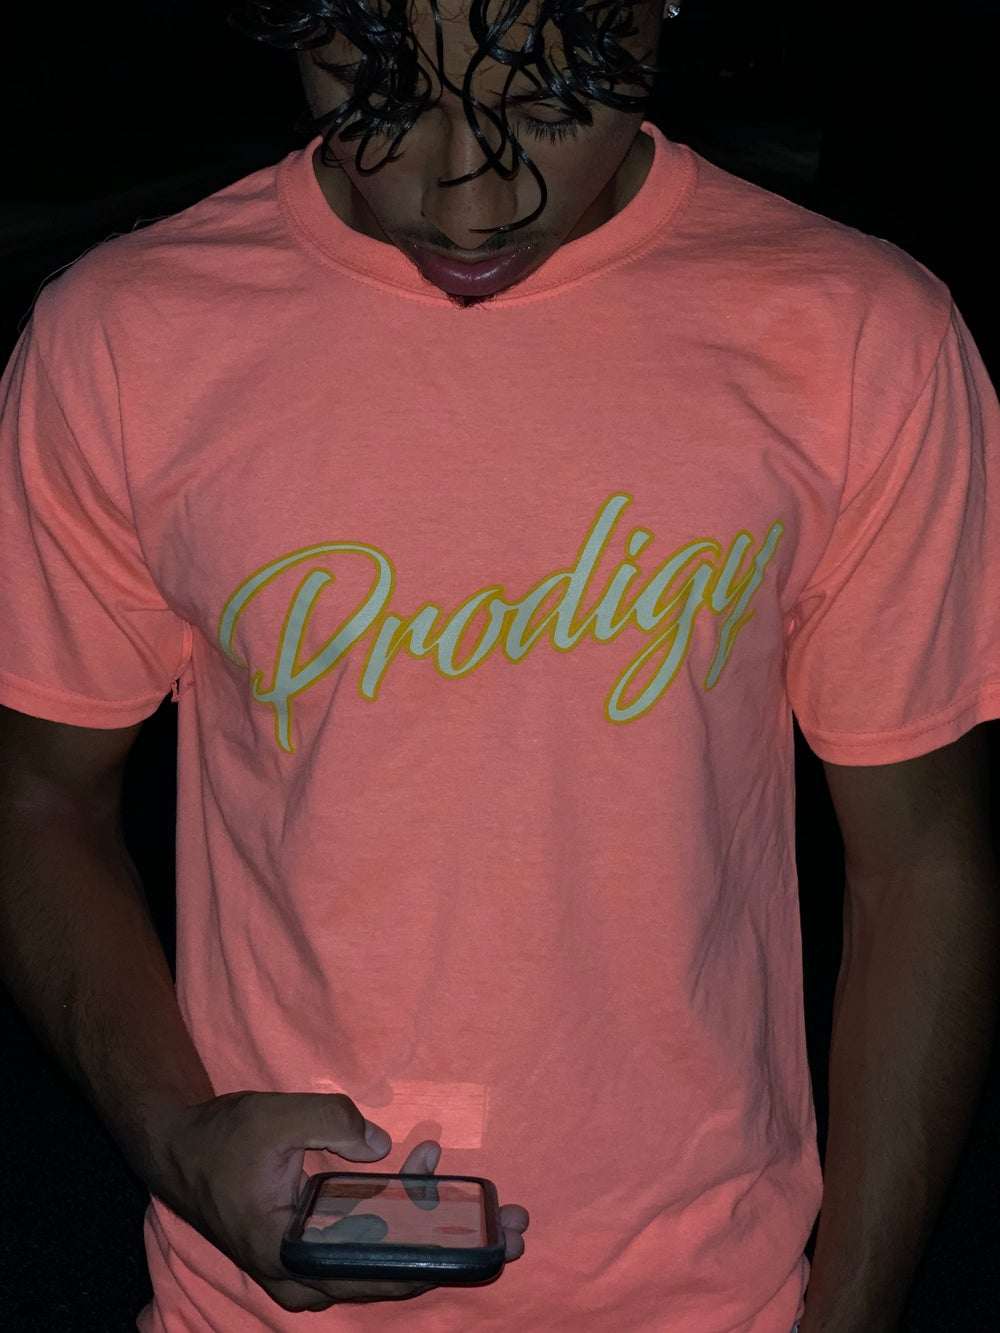 NEW PRODIGY SCRIPT RETRO CORAL T SHIRT WITH KHAKI & YELLOW INK